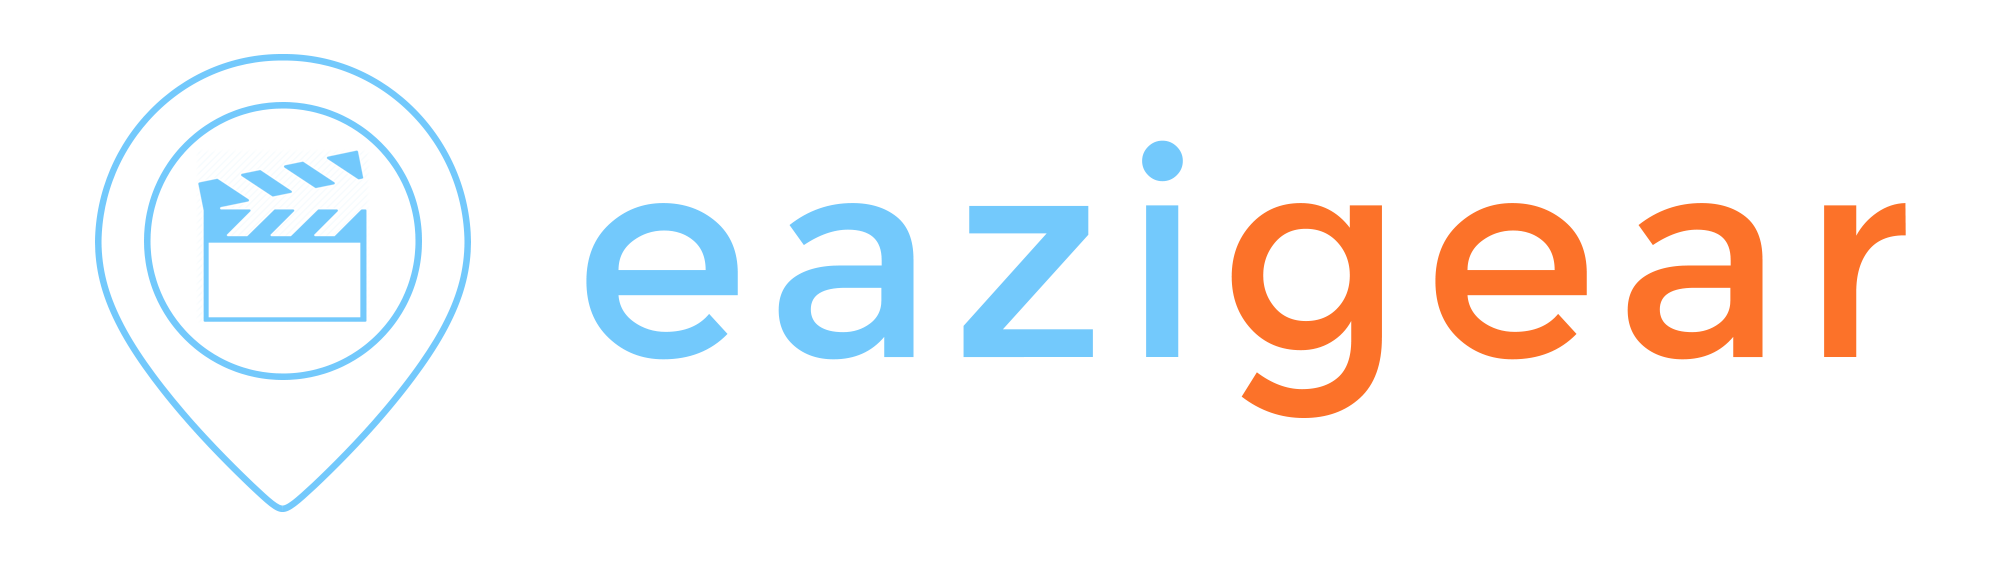 eazigear_wordmark and device_web